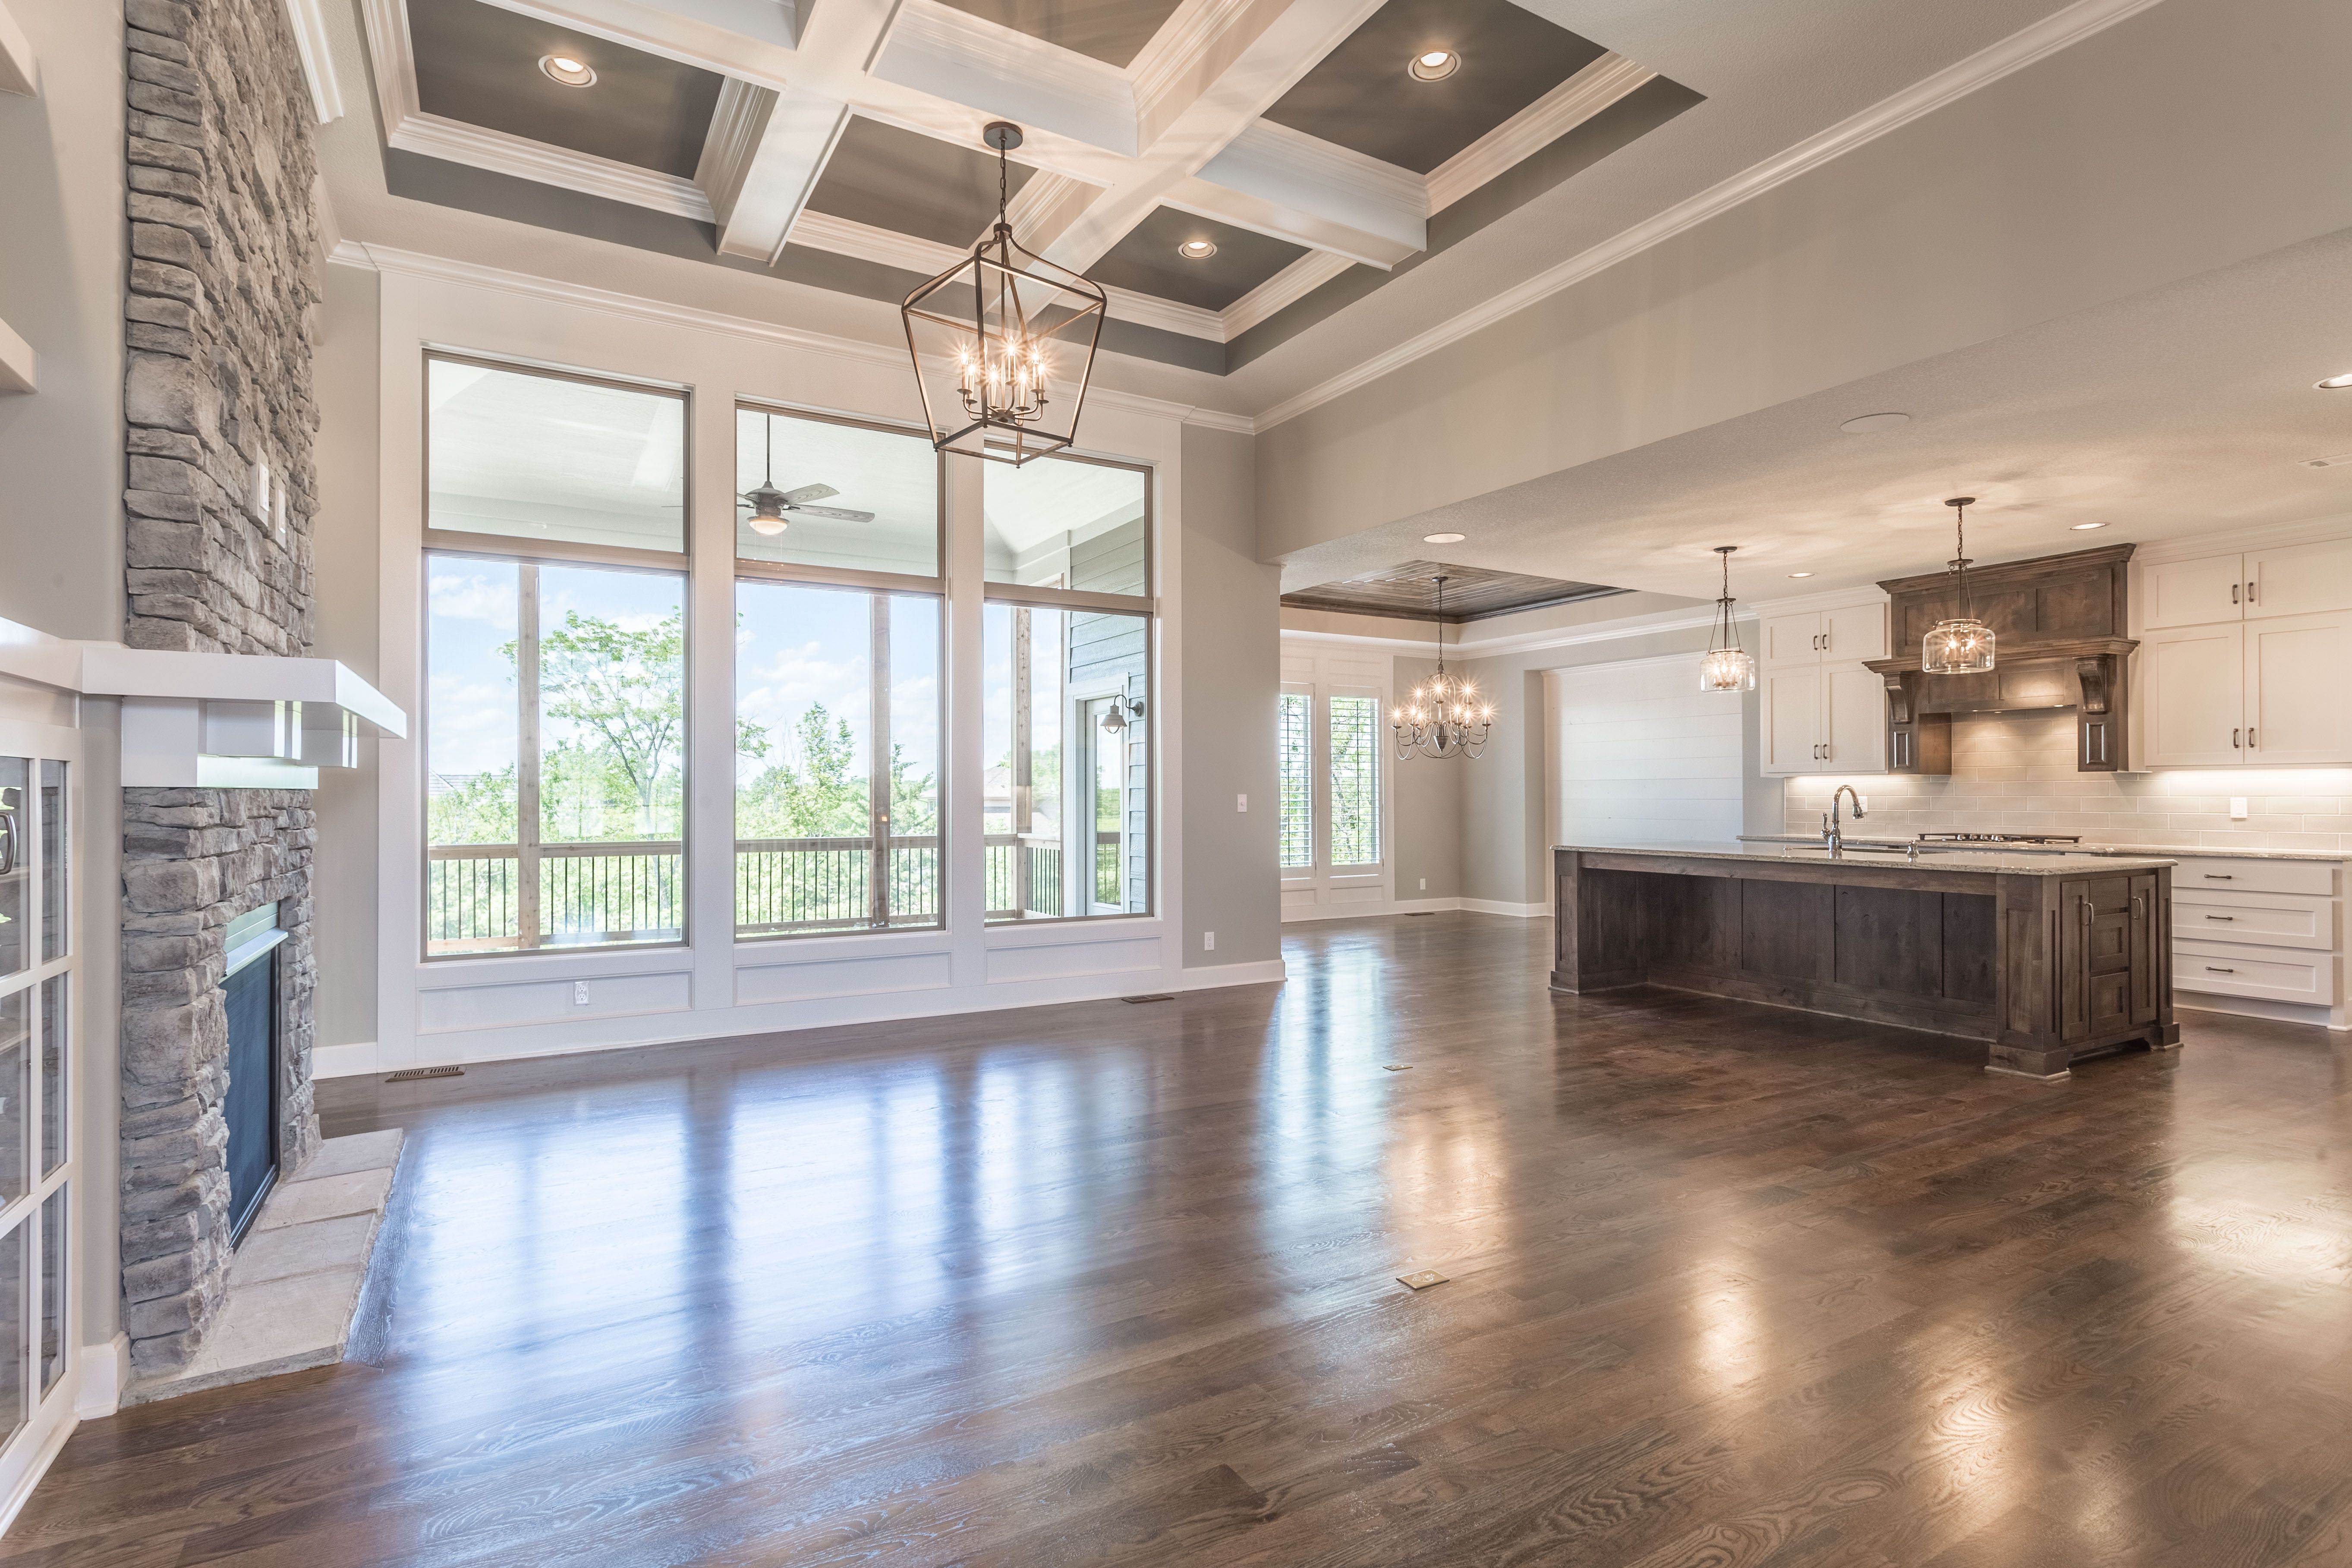 Interior Design Coffered Ceiling Lighting New Home Ideas Hardwood Floors Painted Cabinets Reverse 1 5 Floo Dream House Ideas Kitchens House House Design